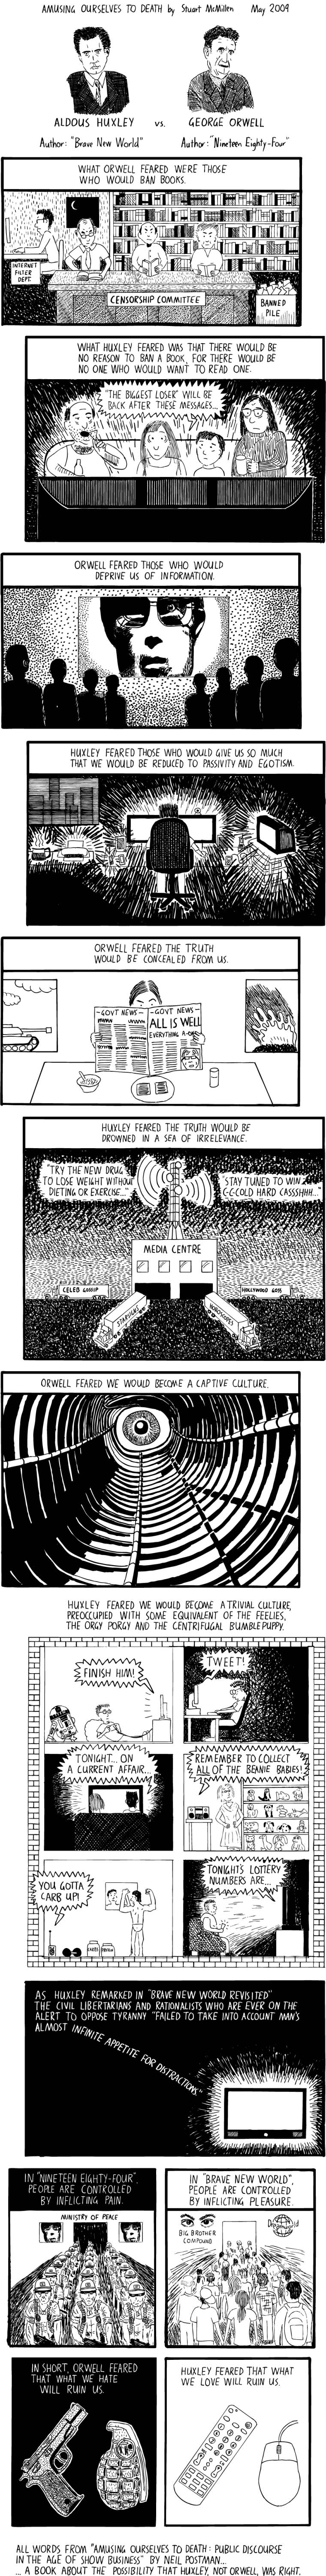 huxley vs orwell the webcomic biblioklept stuart mcmillen s